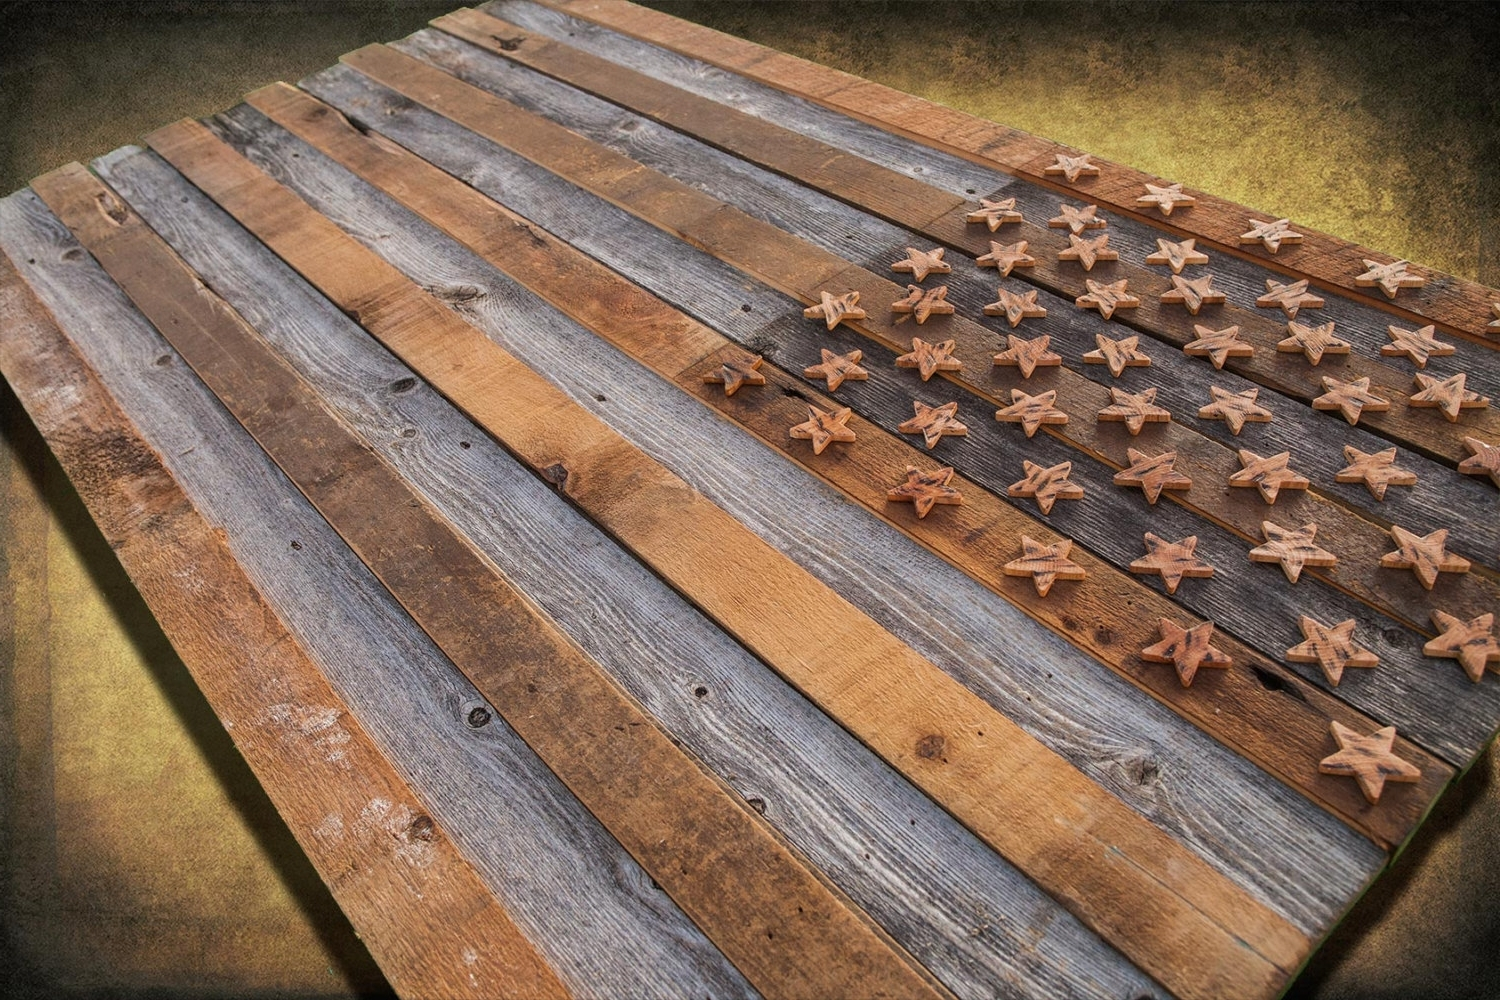 Barnwood American Flag, 100 Year Old Wood, One Of A Kind, 3d, Wooden Inside Most Recently Released Vintage American Flag Wall Art (View 17 of 20)